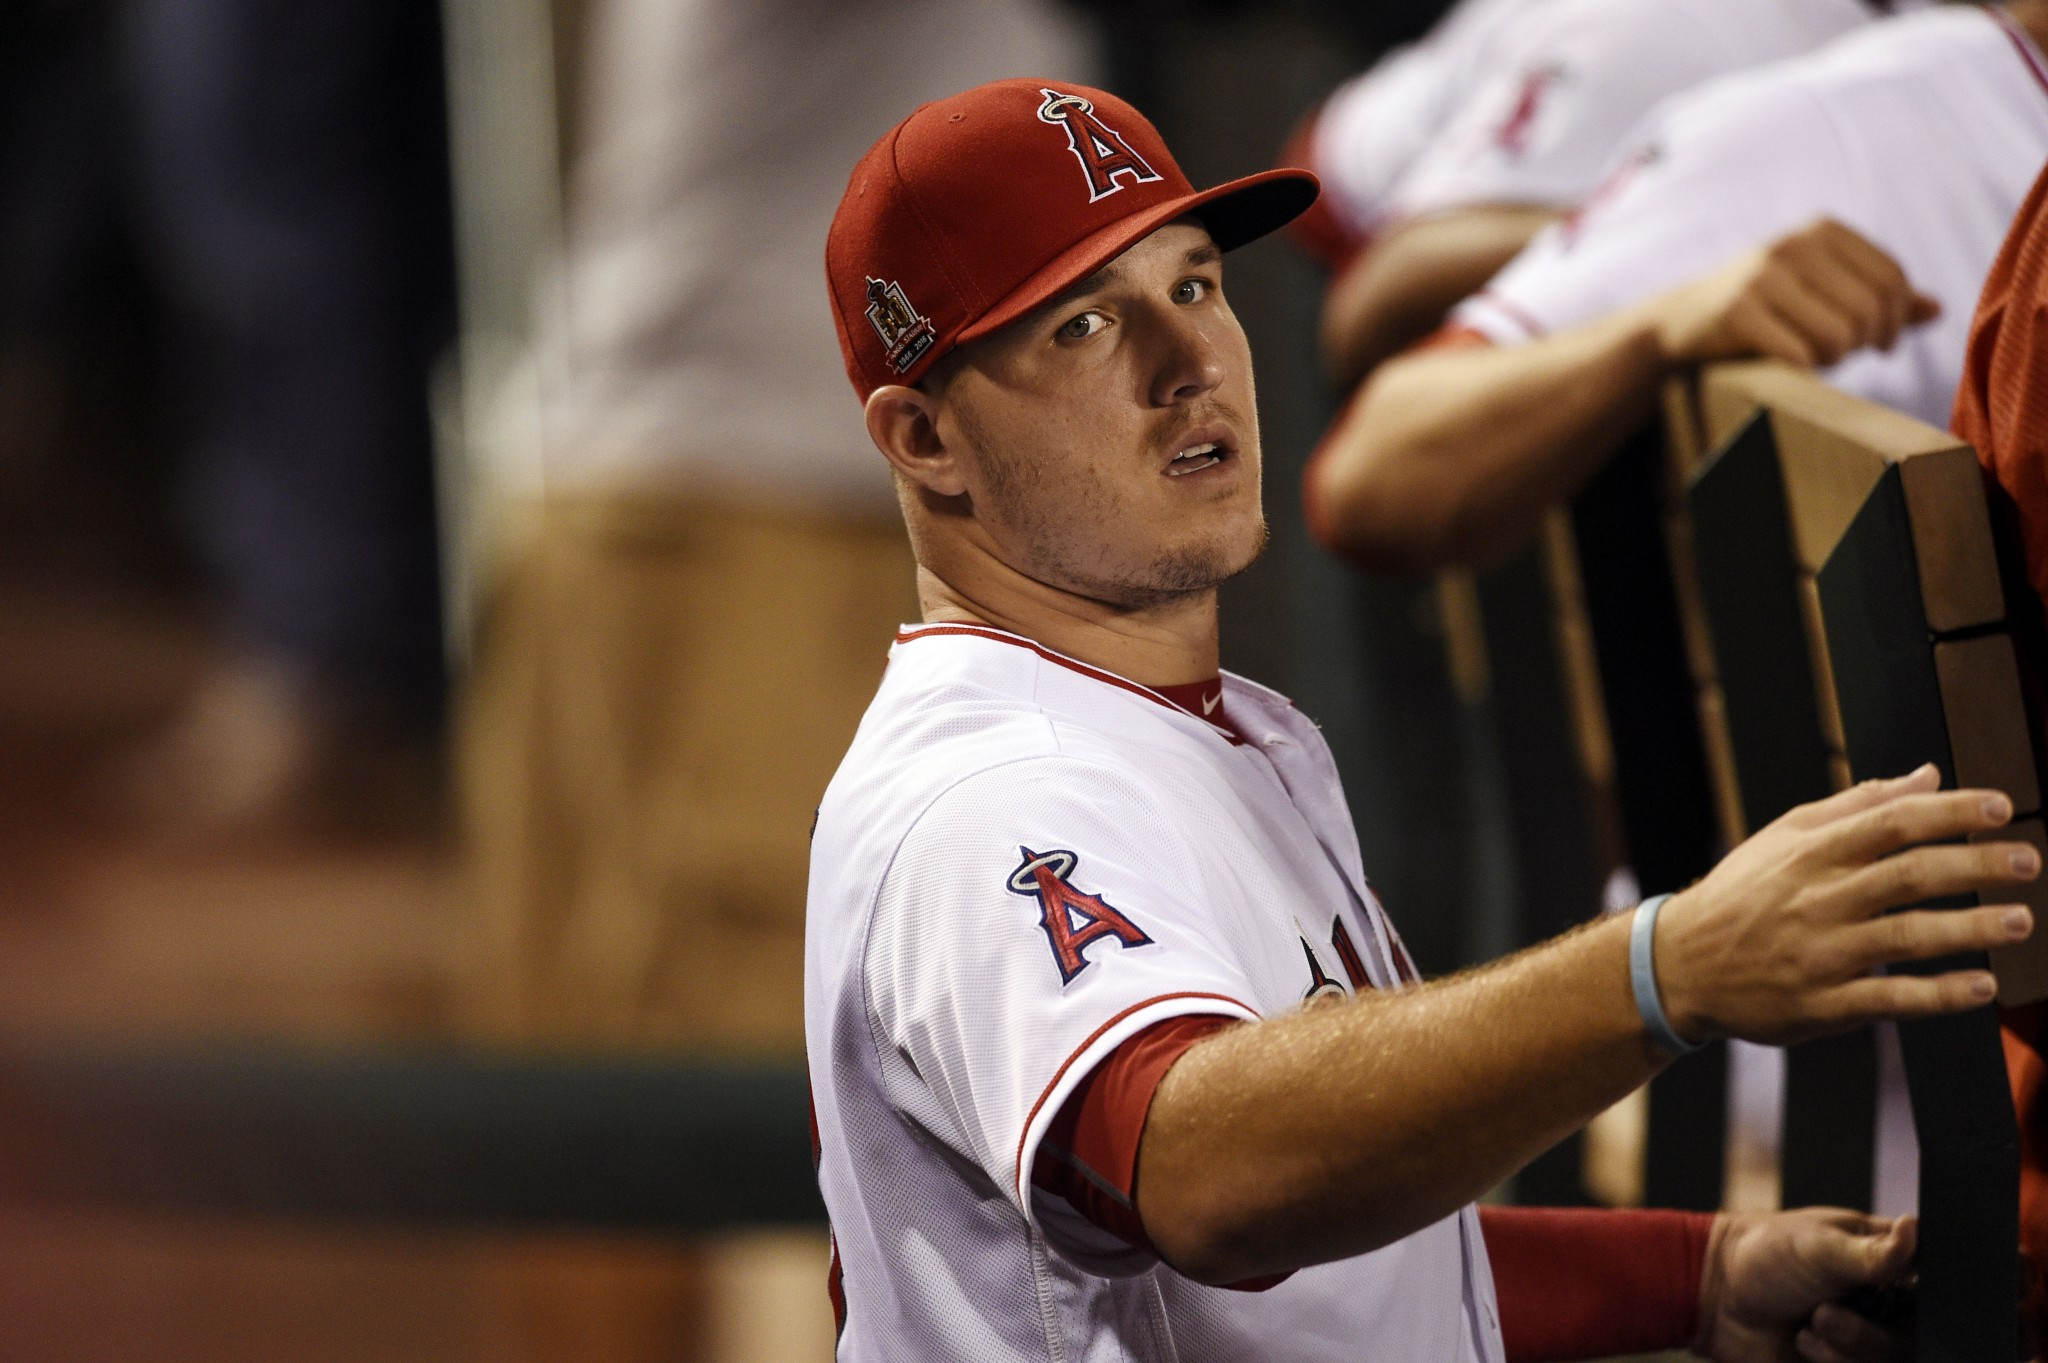 Hot Stove Digest: Could the Yankees trade for Mike Trout?